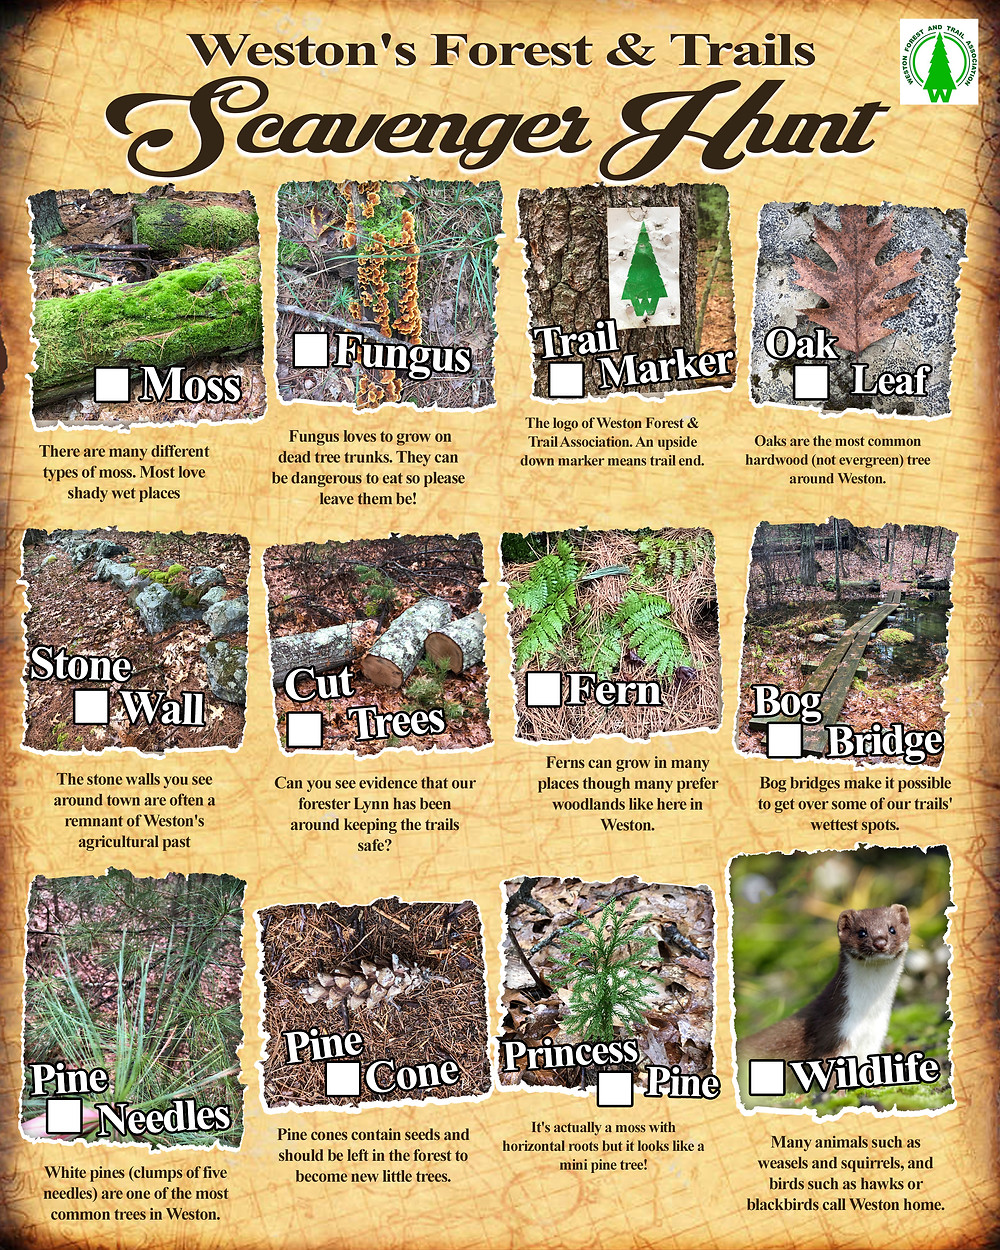 checklist of forest features for scavenger hunt